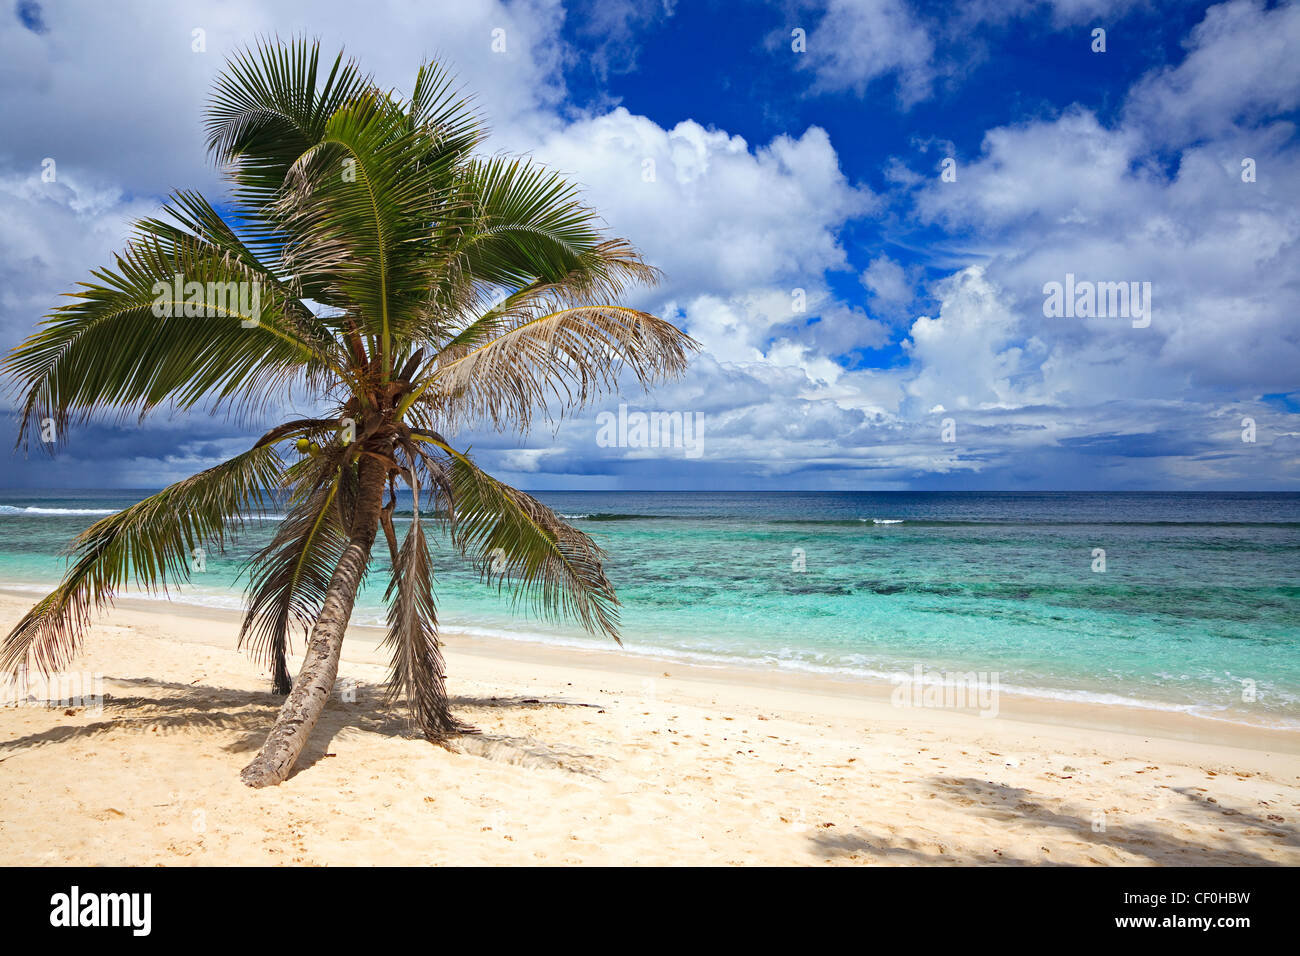 Bel Ombre beach on Mahe Island, Seychelles, with a palm tree and Indian Ocean - Stock Image